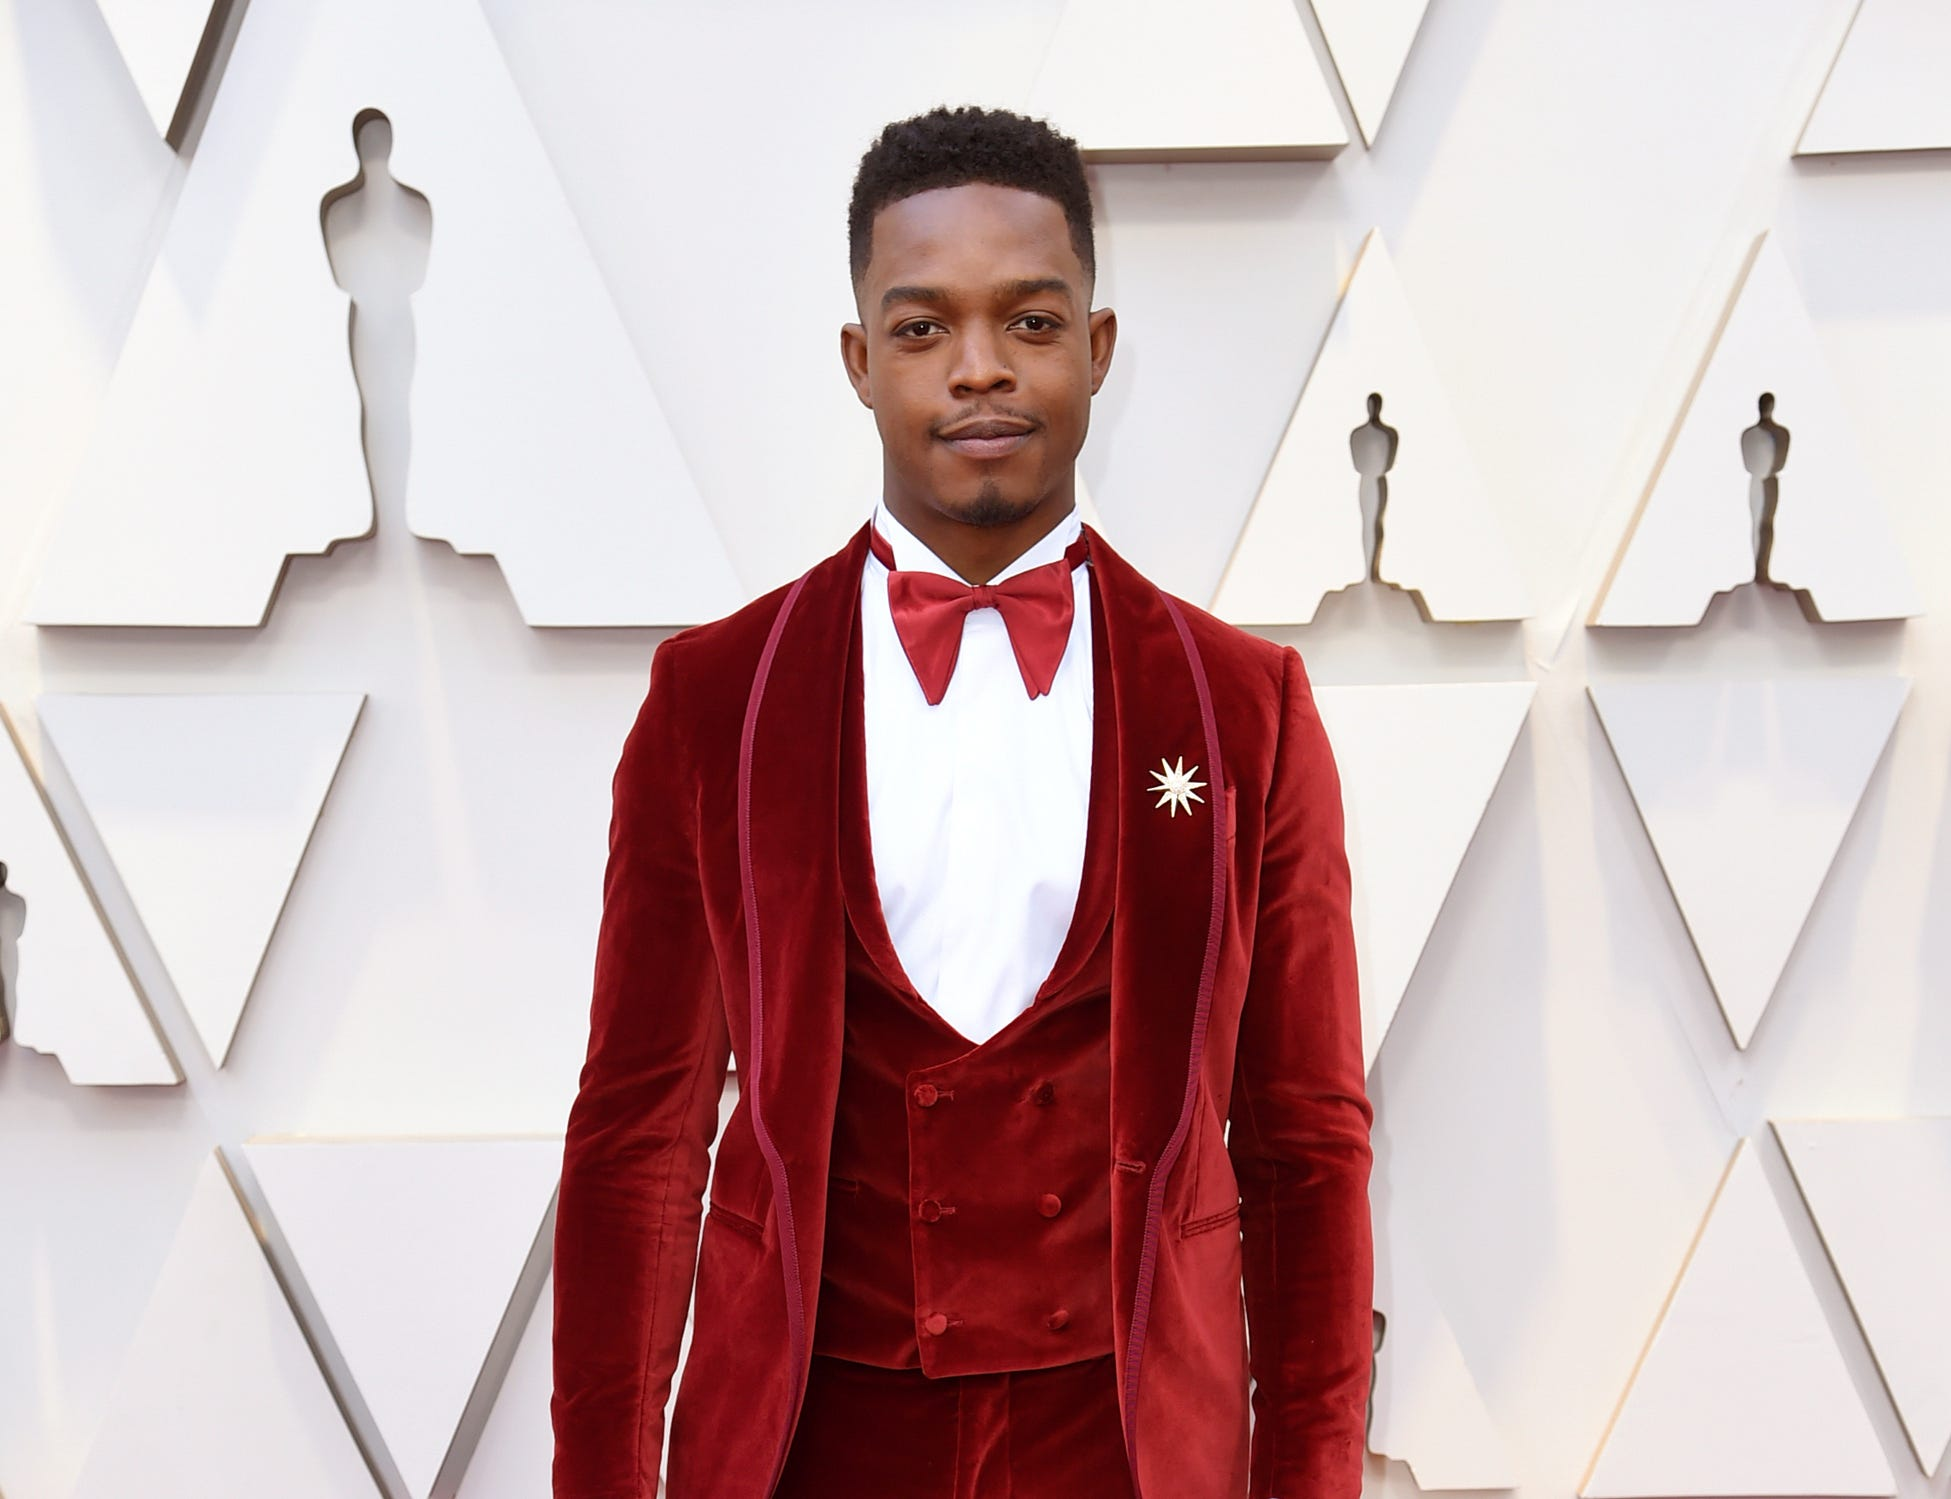 Stephan James arrives at the Oscars on Sunday, Feb. 24, 2019, at the Dolby Theatre in Los Angeles. (Photo by Richard Shotwell/Invision/AP) ORG XMIT: CACV530